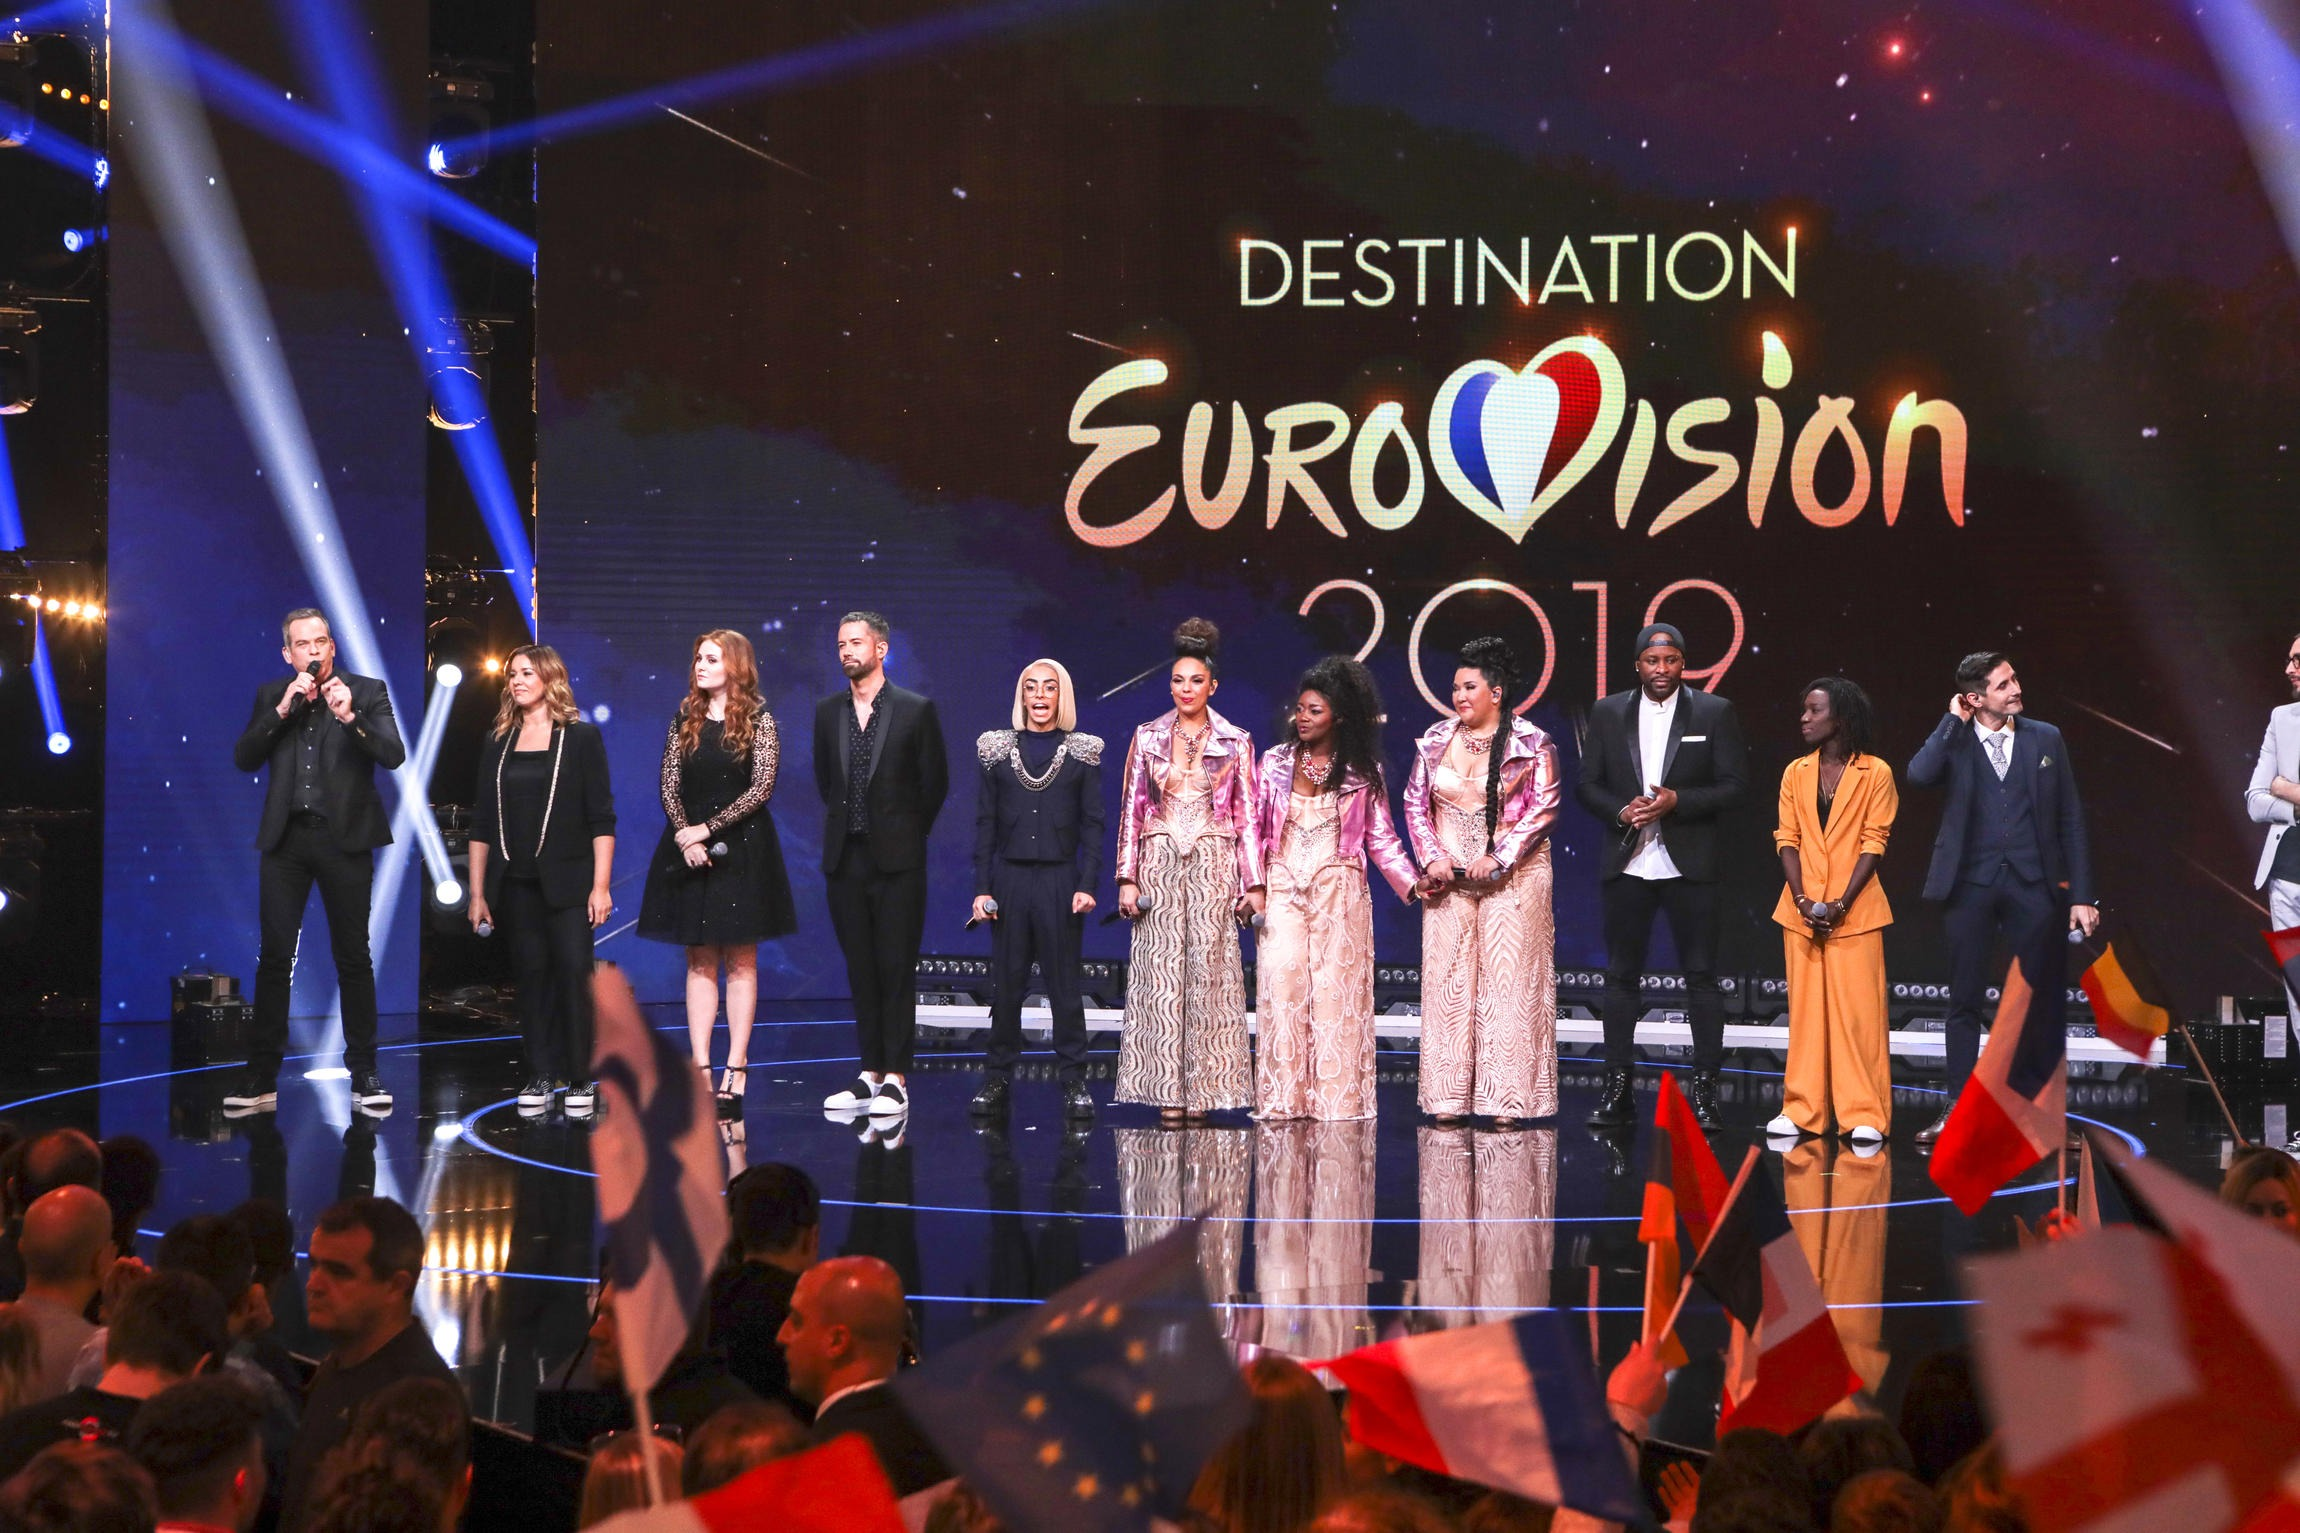 destination eurovision